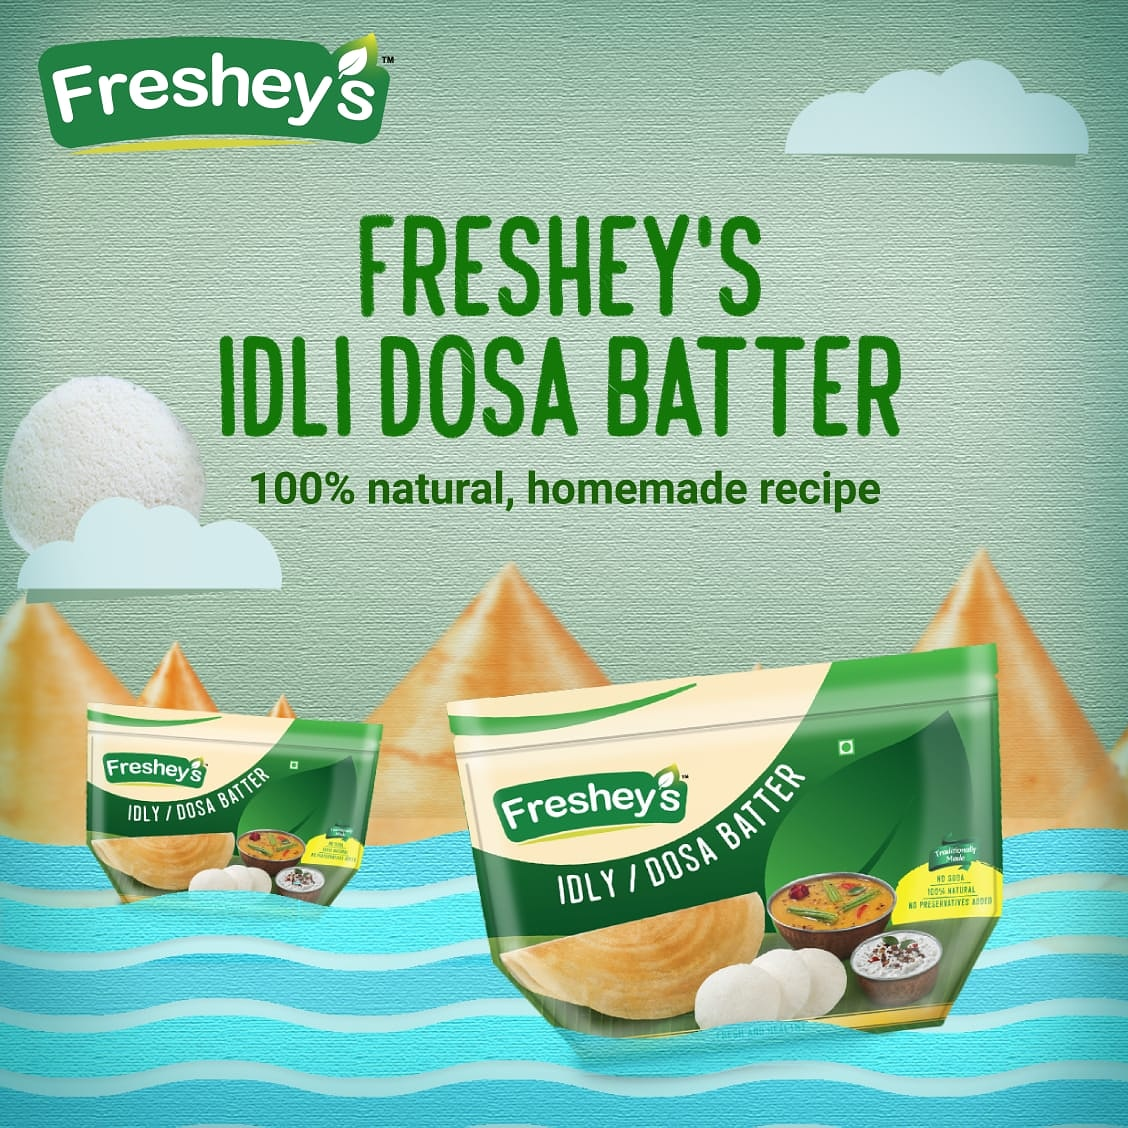 Traditionally made and 100% natural! Make the crispiest dosas in an instant with Freshey's dosa batter.  #Fresheys #TradionalMadeConvenient #SmartCooking #Dosa #TraditionalFood https://t.co/sUU6ZtCXMt